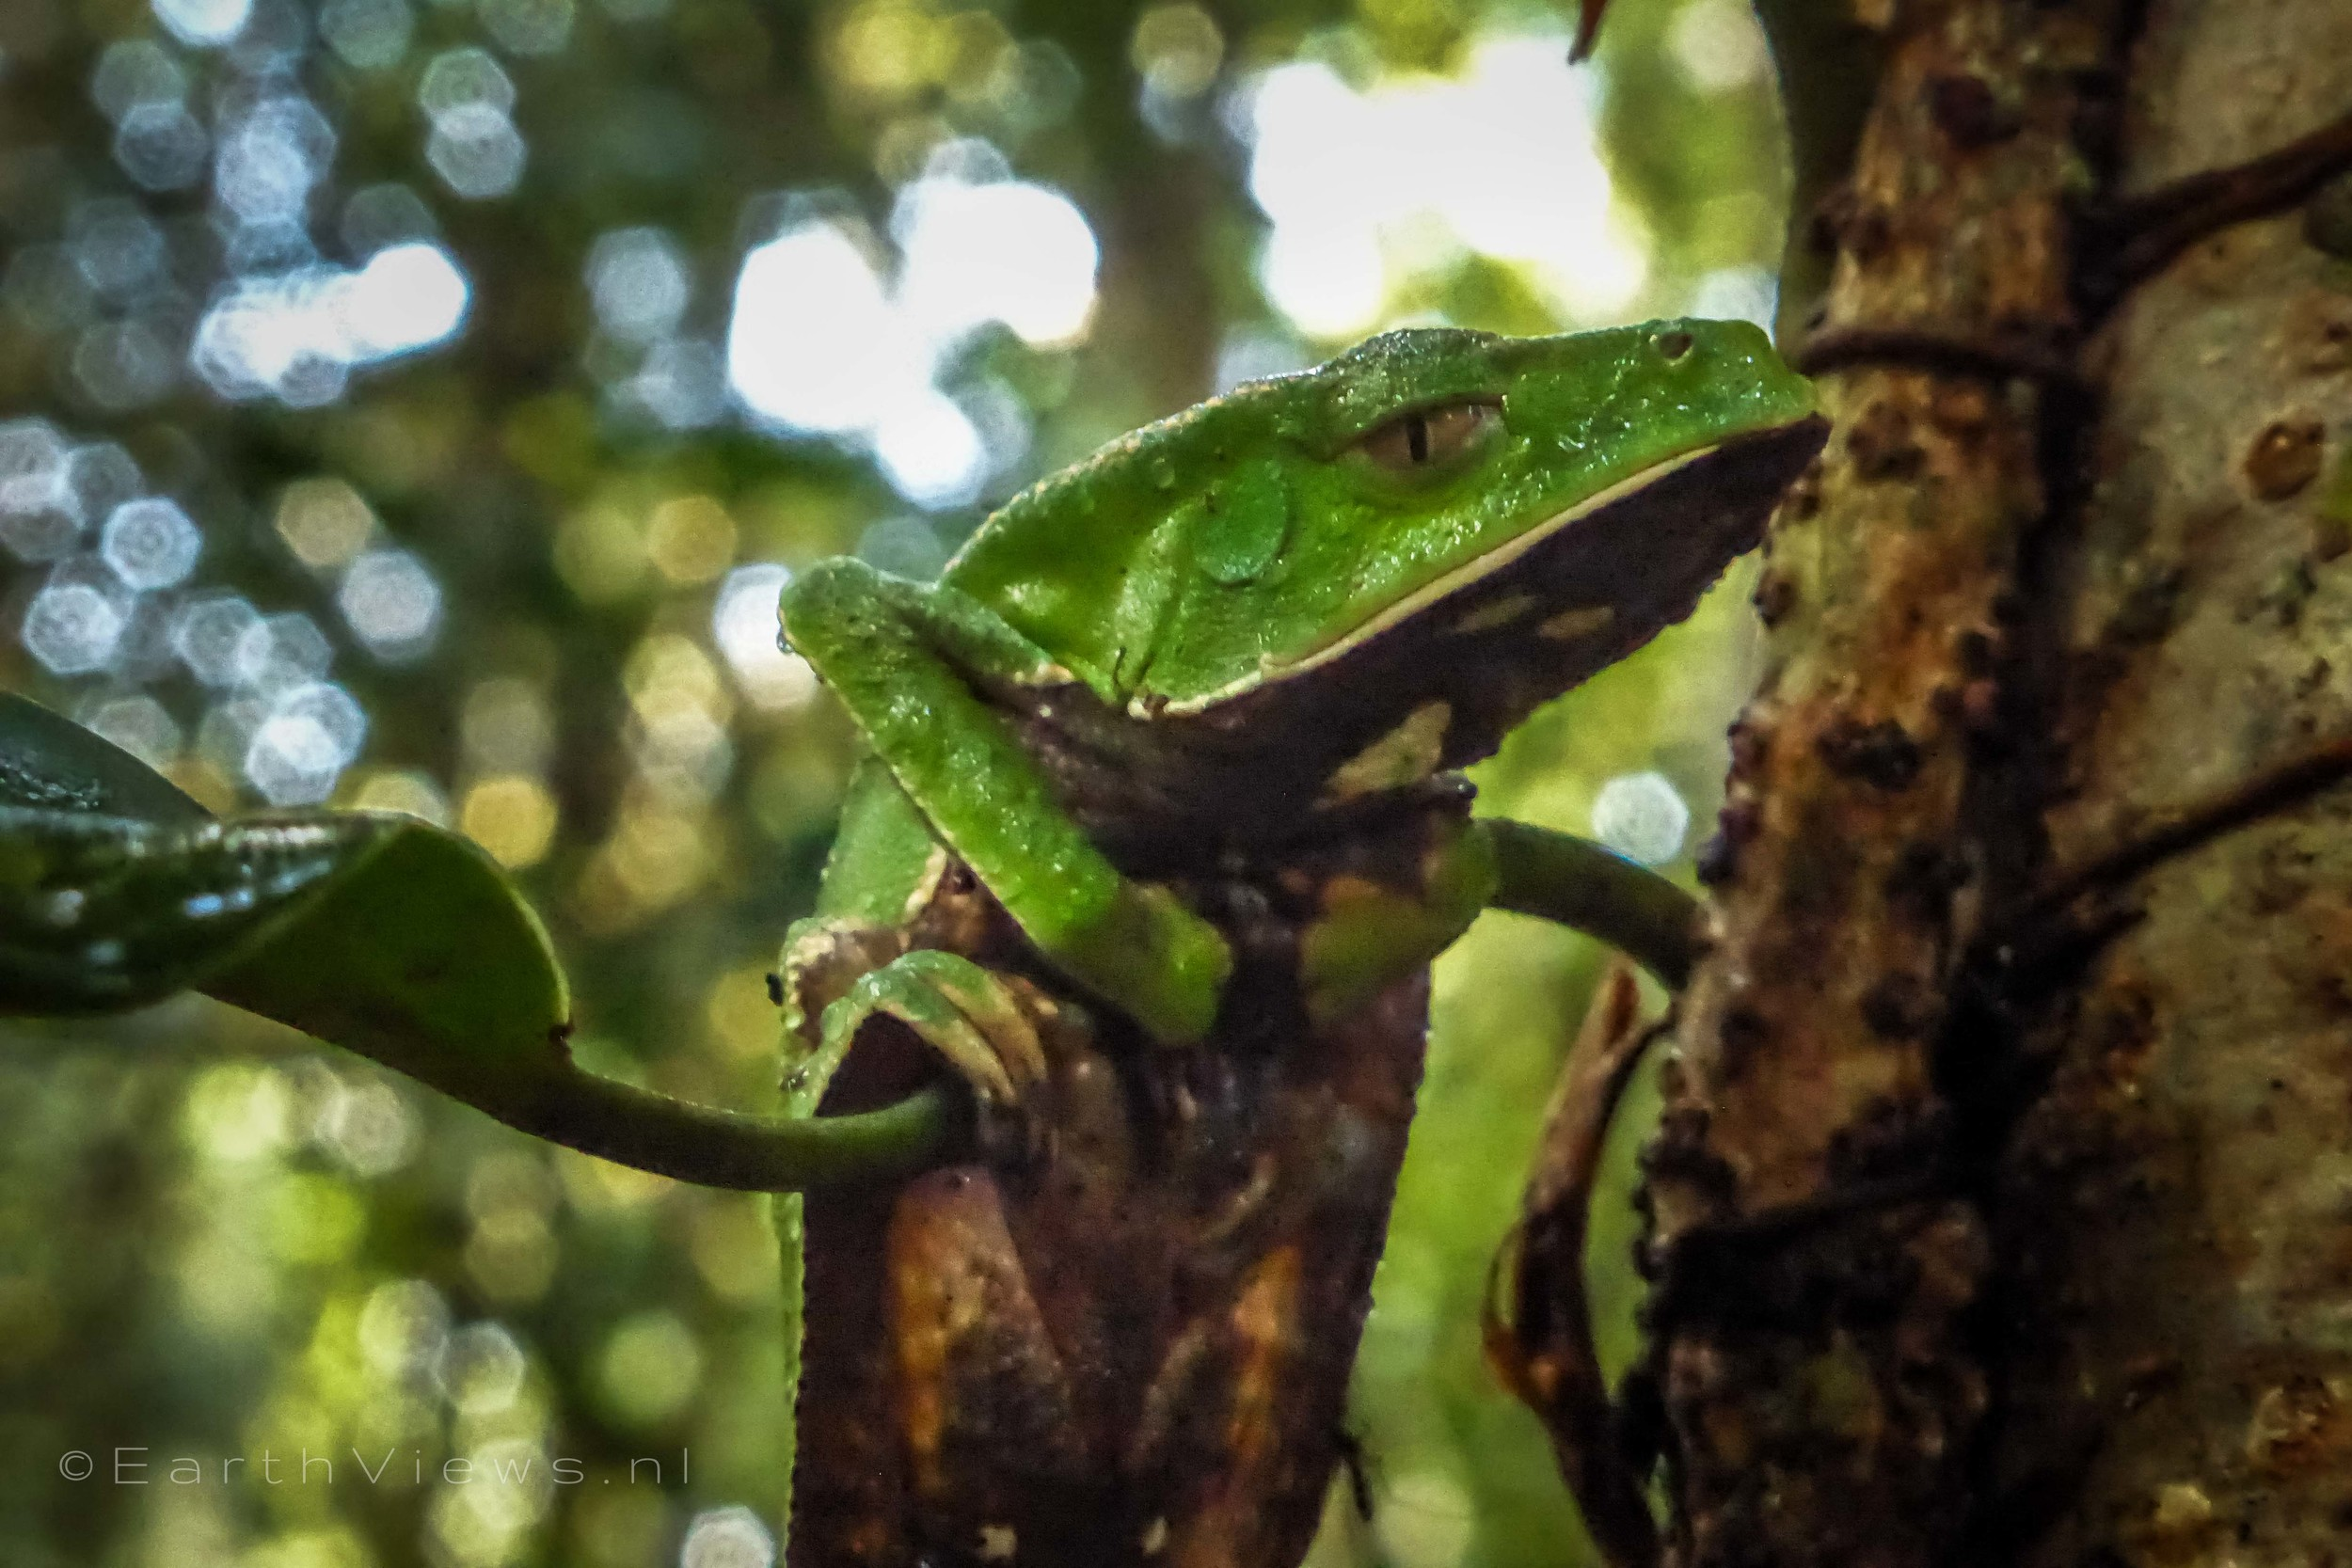 An 'undiscovered' – or uncatalogued – frog.